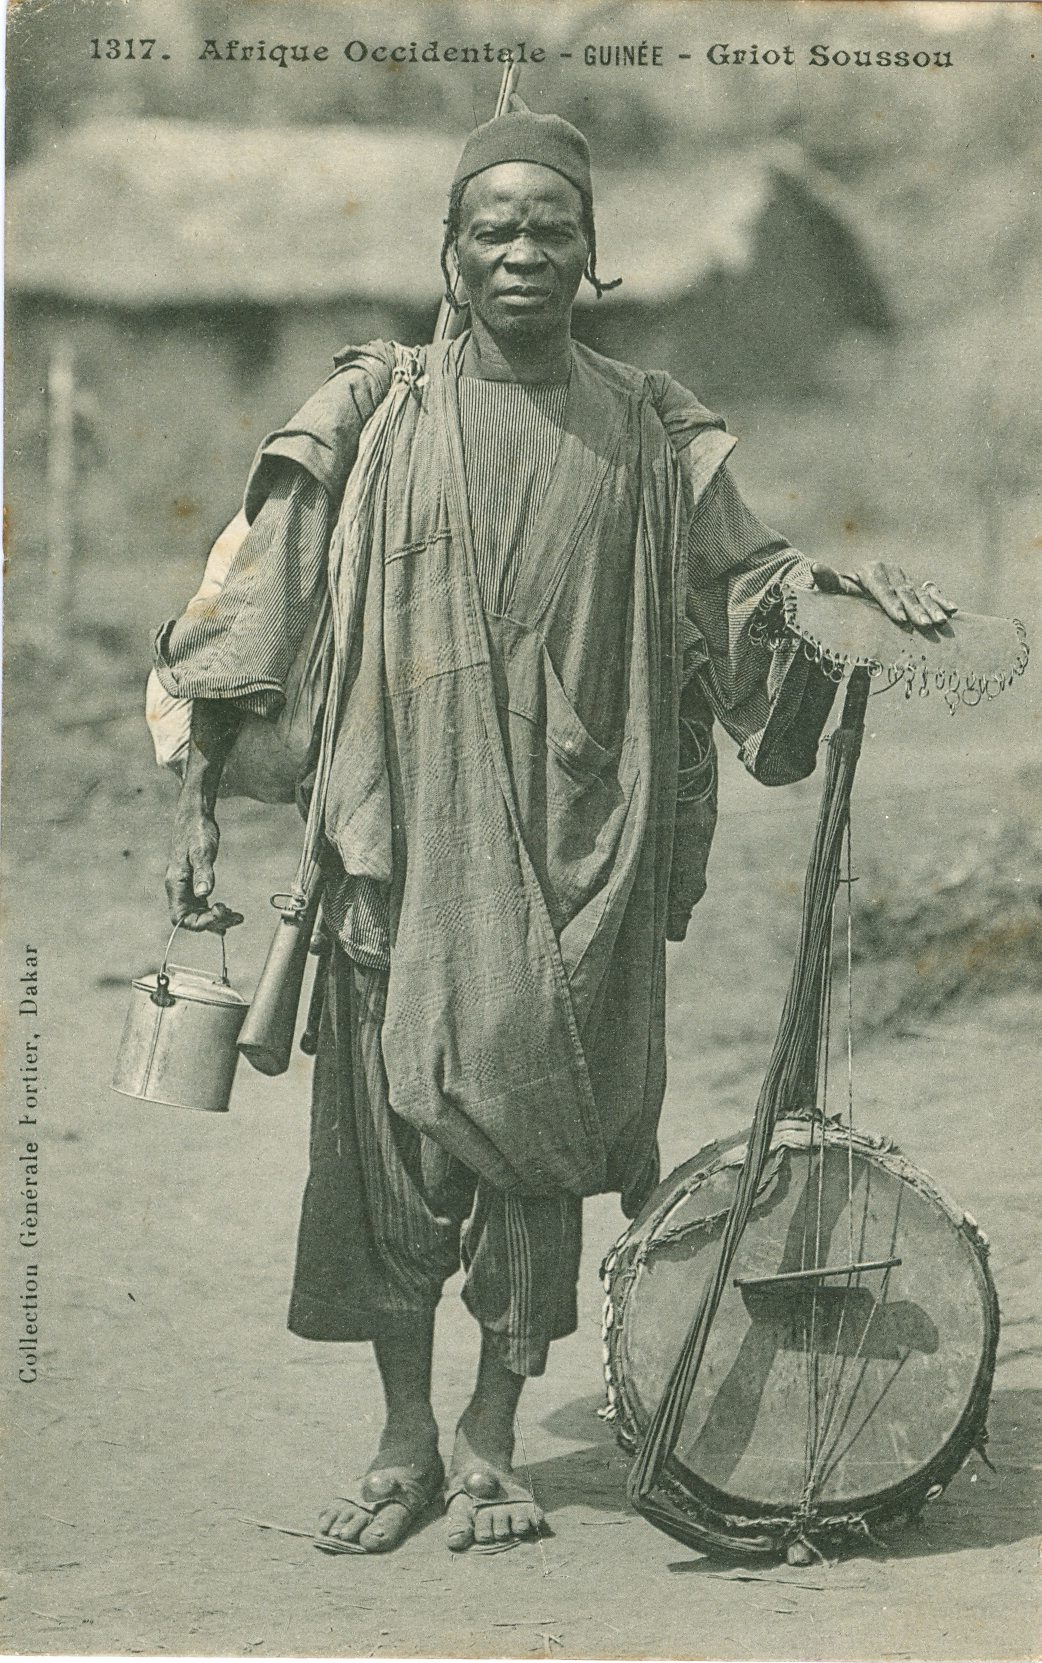 This image shows a griot (musician and storyteller) with his kora (calabash harp). It is the work of Edmond Fortier, a French photographer who spent nearly 30 years working in West Africa, mainly Senegal, in the early 20th century. The photograph will be displayed in West Africa: Word, Symbol, Song at the British Library. Courtesy of Daniela Moreau/Acervo África/São Paulo-Brazil.